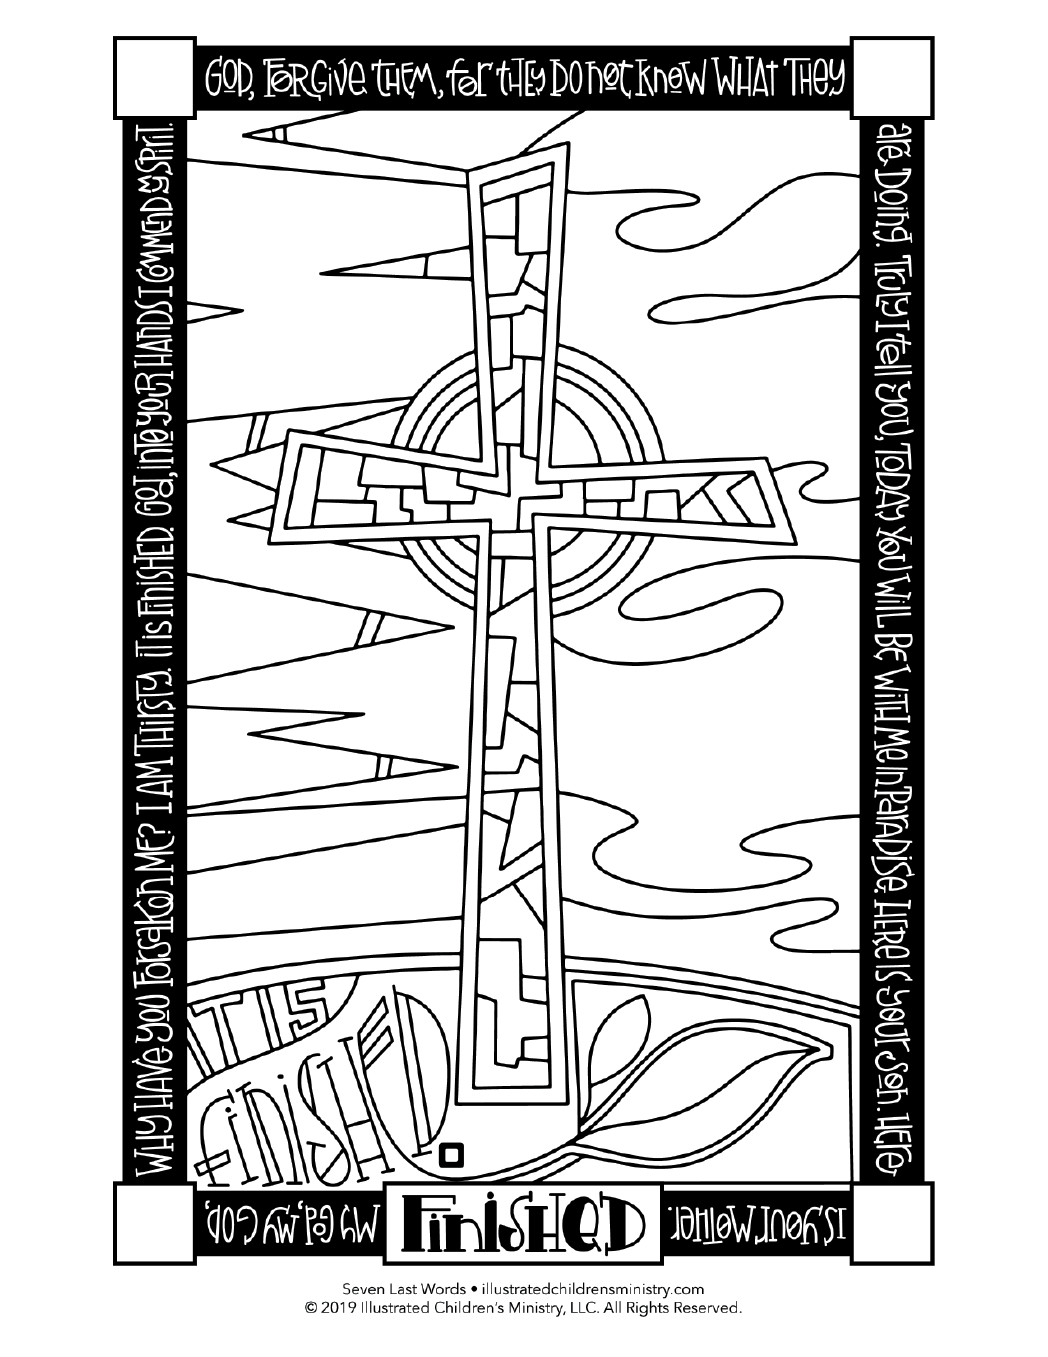 Seven Last Words coloring page simple - Finished